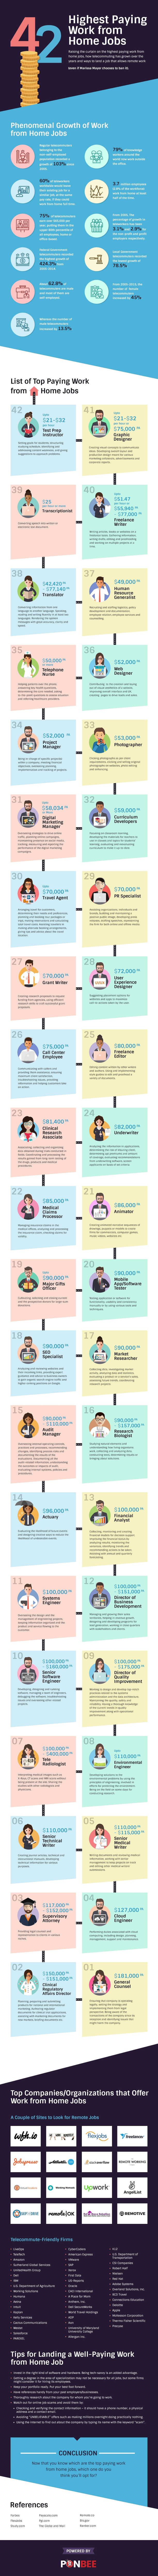 work from home jobs infographic